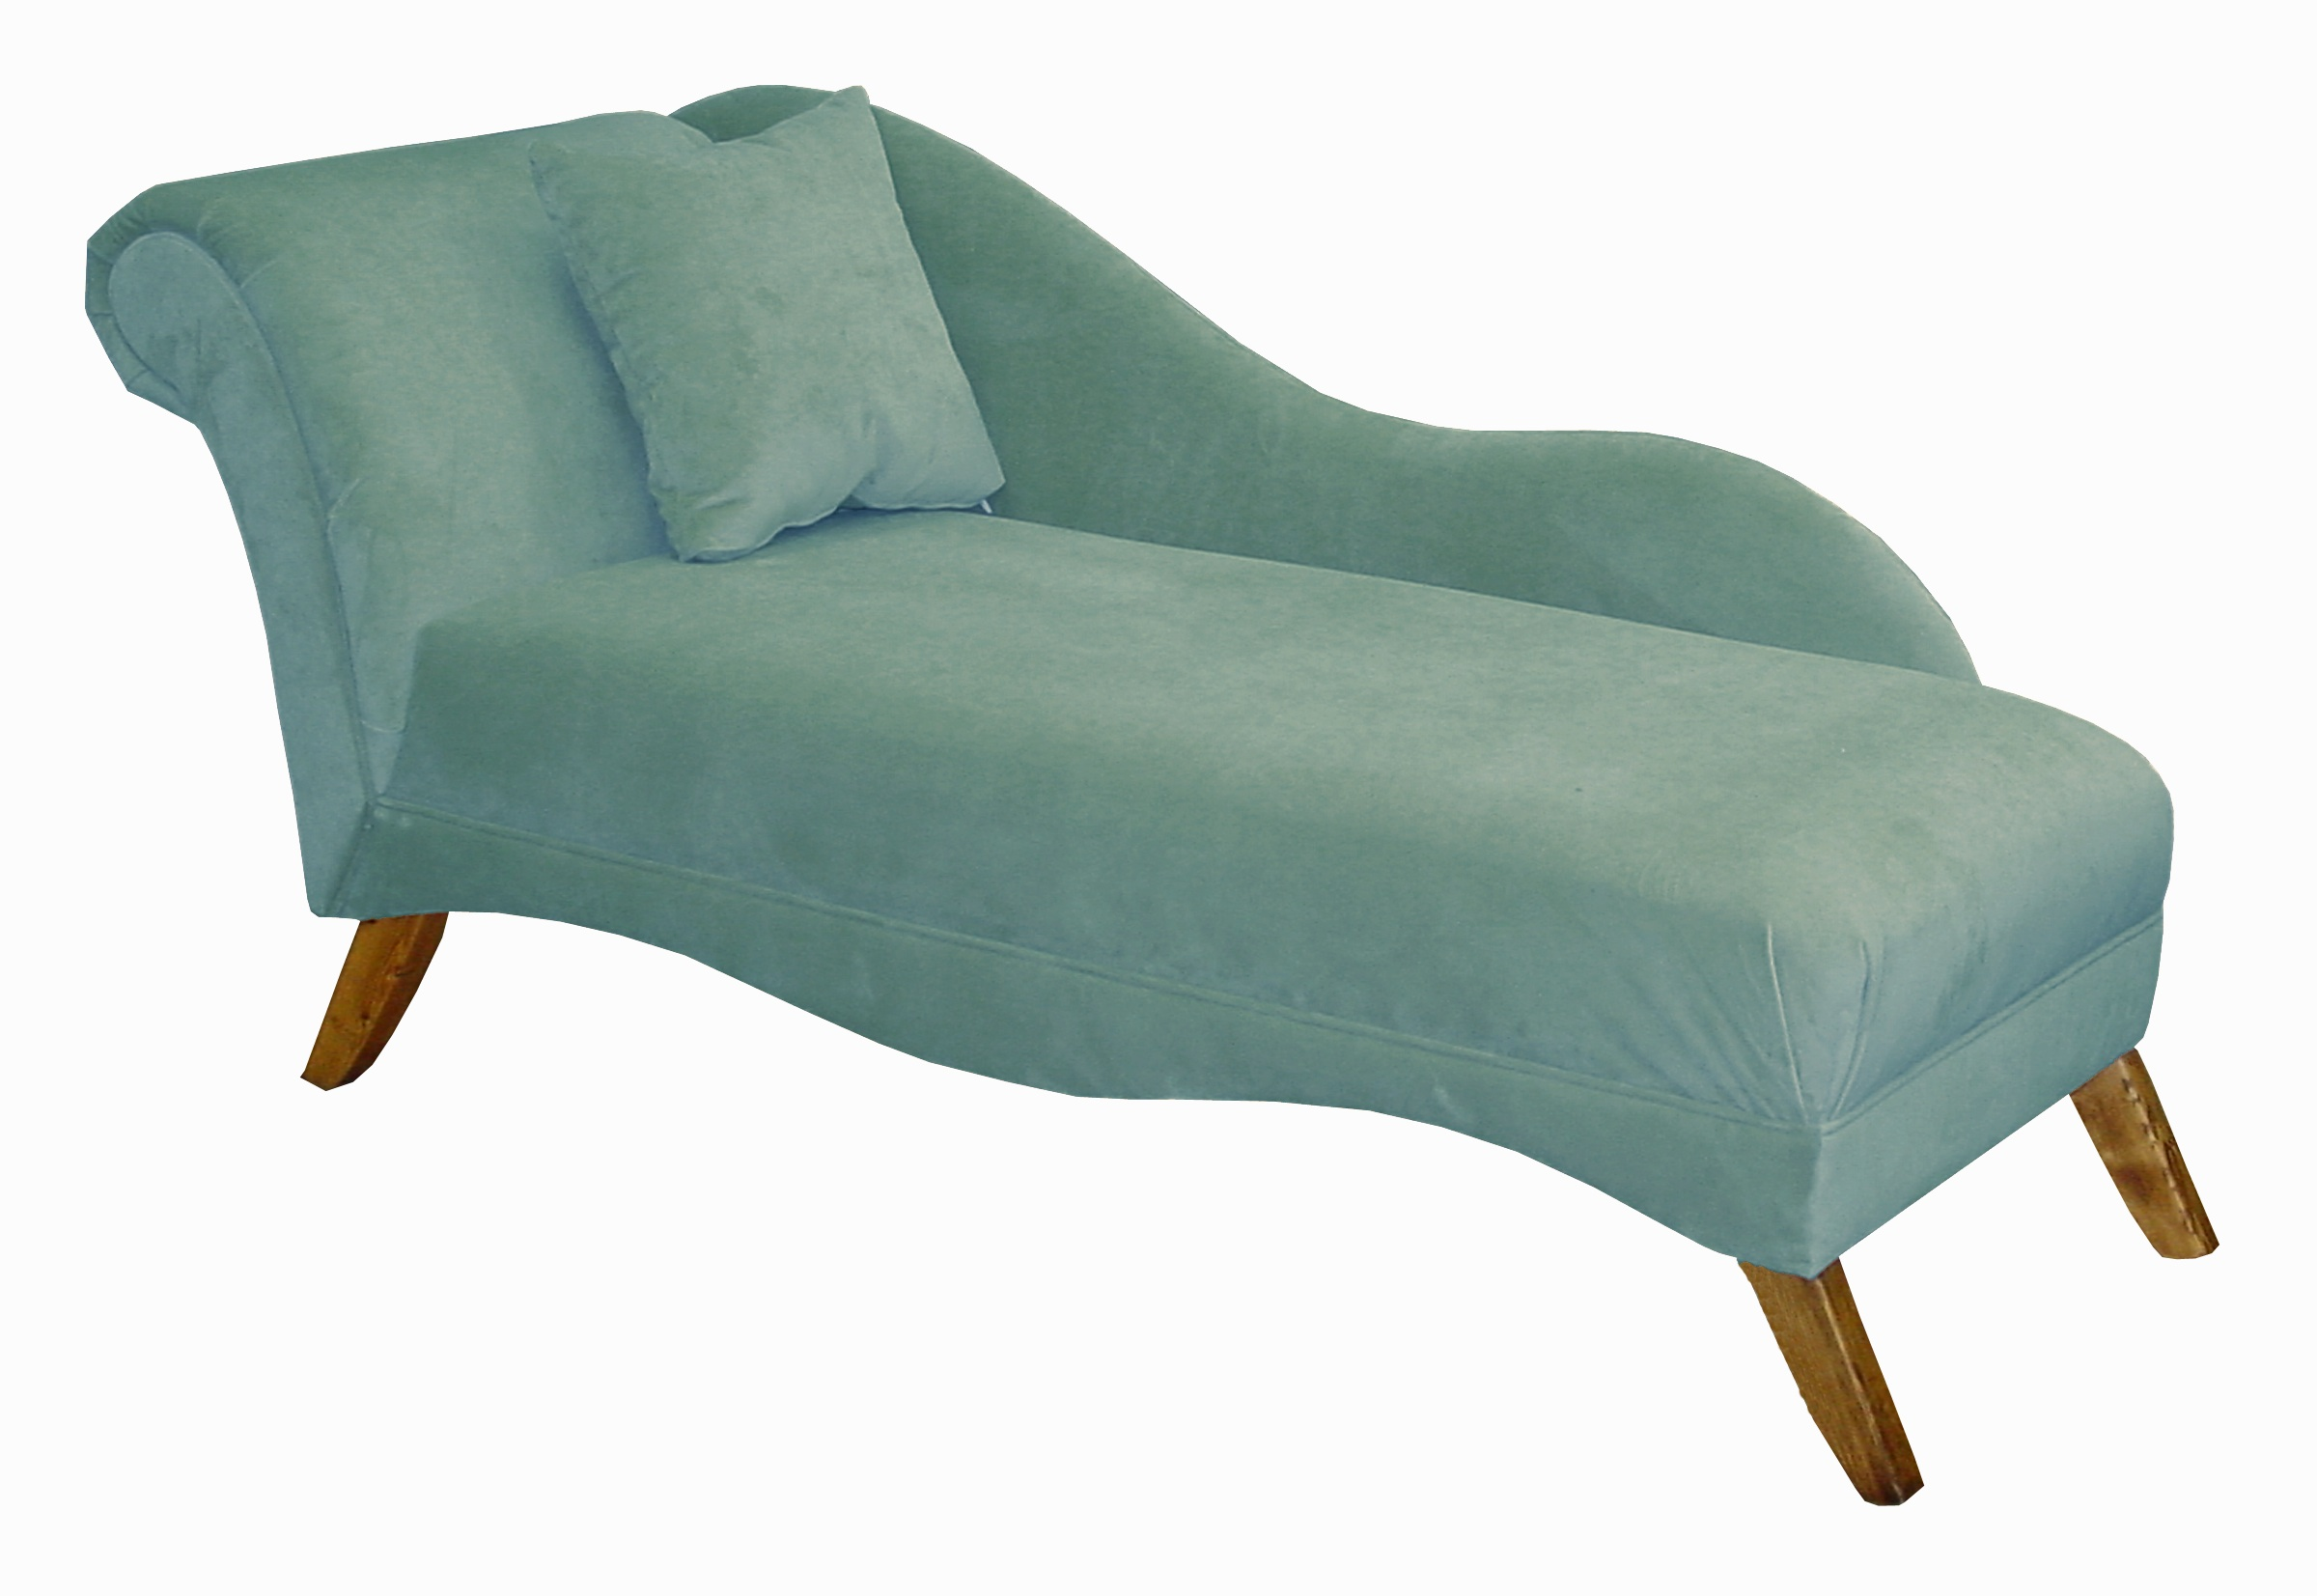 Furniture > Living Room Furniture > Chaise Lounge > Velvet Chaise